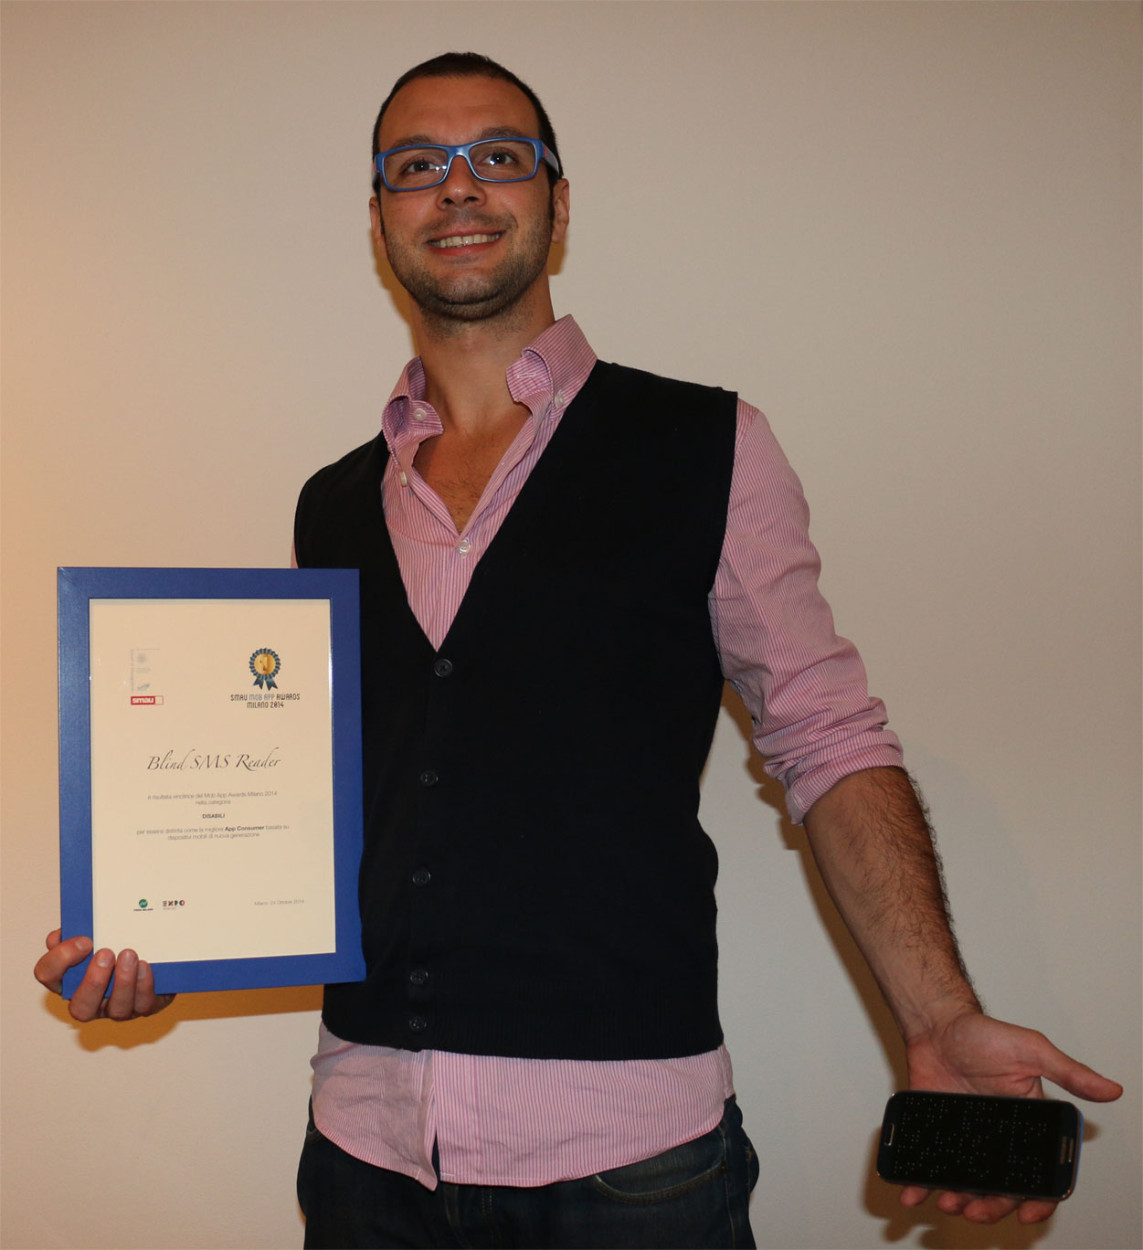 SMAU - Michele Pisani vince al Mob App Awards con Blind SMS Reader